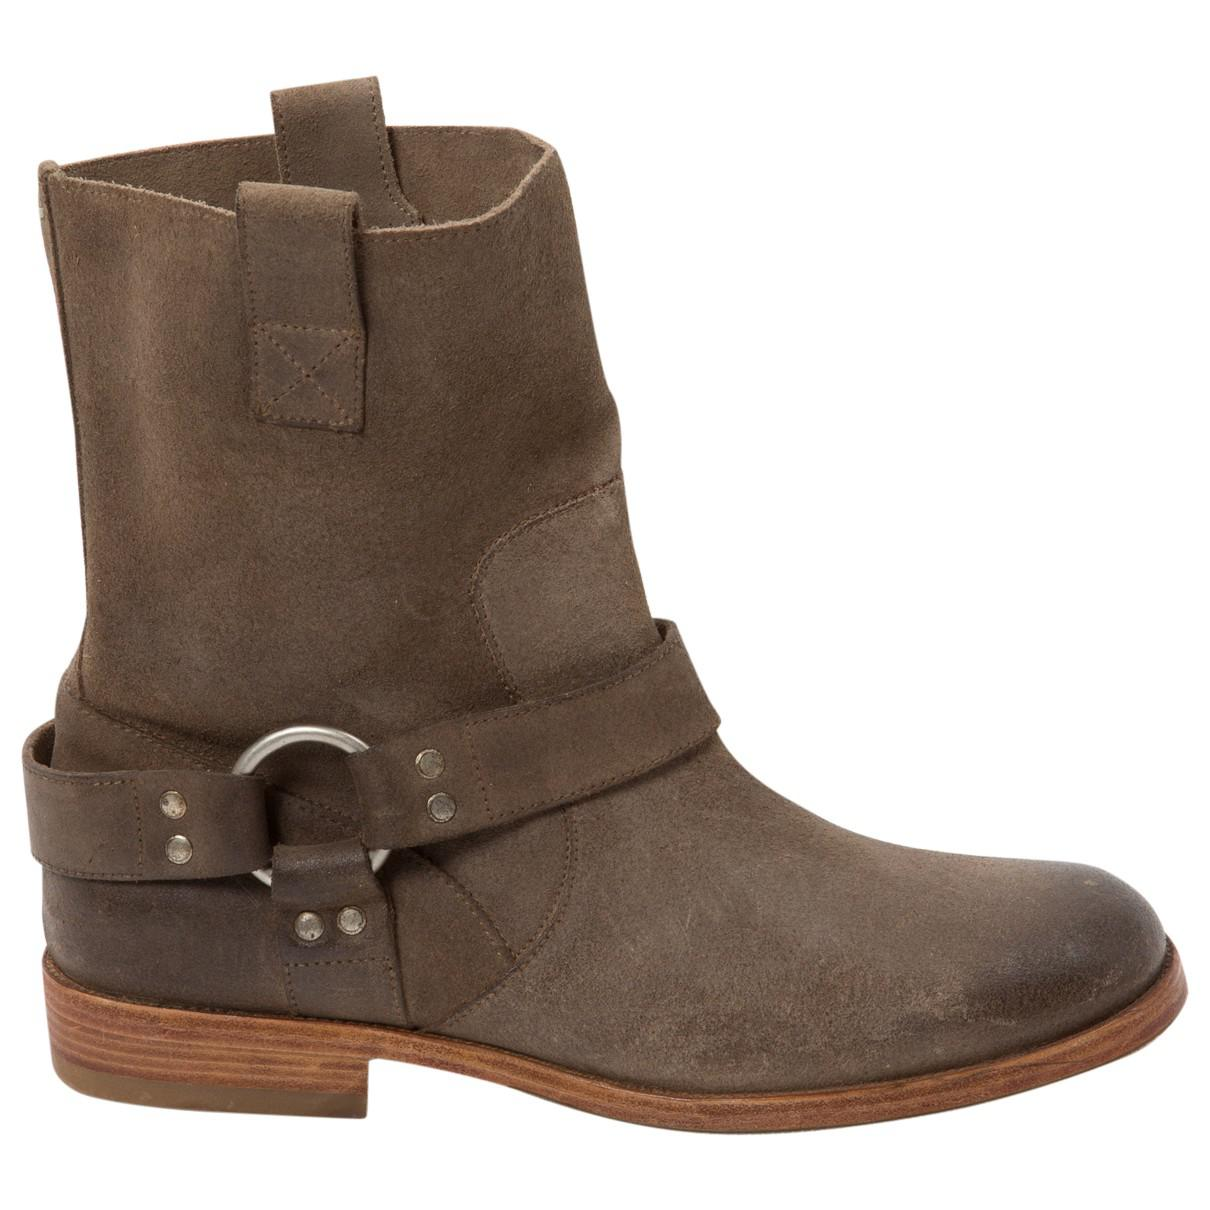 Super Pre-owned - Western boots Maison Martin Margiela Shopping Online Cheap Price Affordable Cheap Price Best Place To Buy yqrK26gC